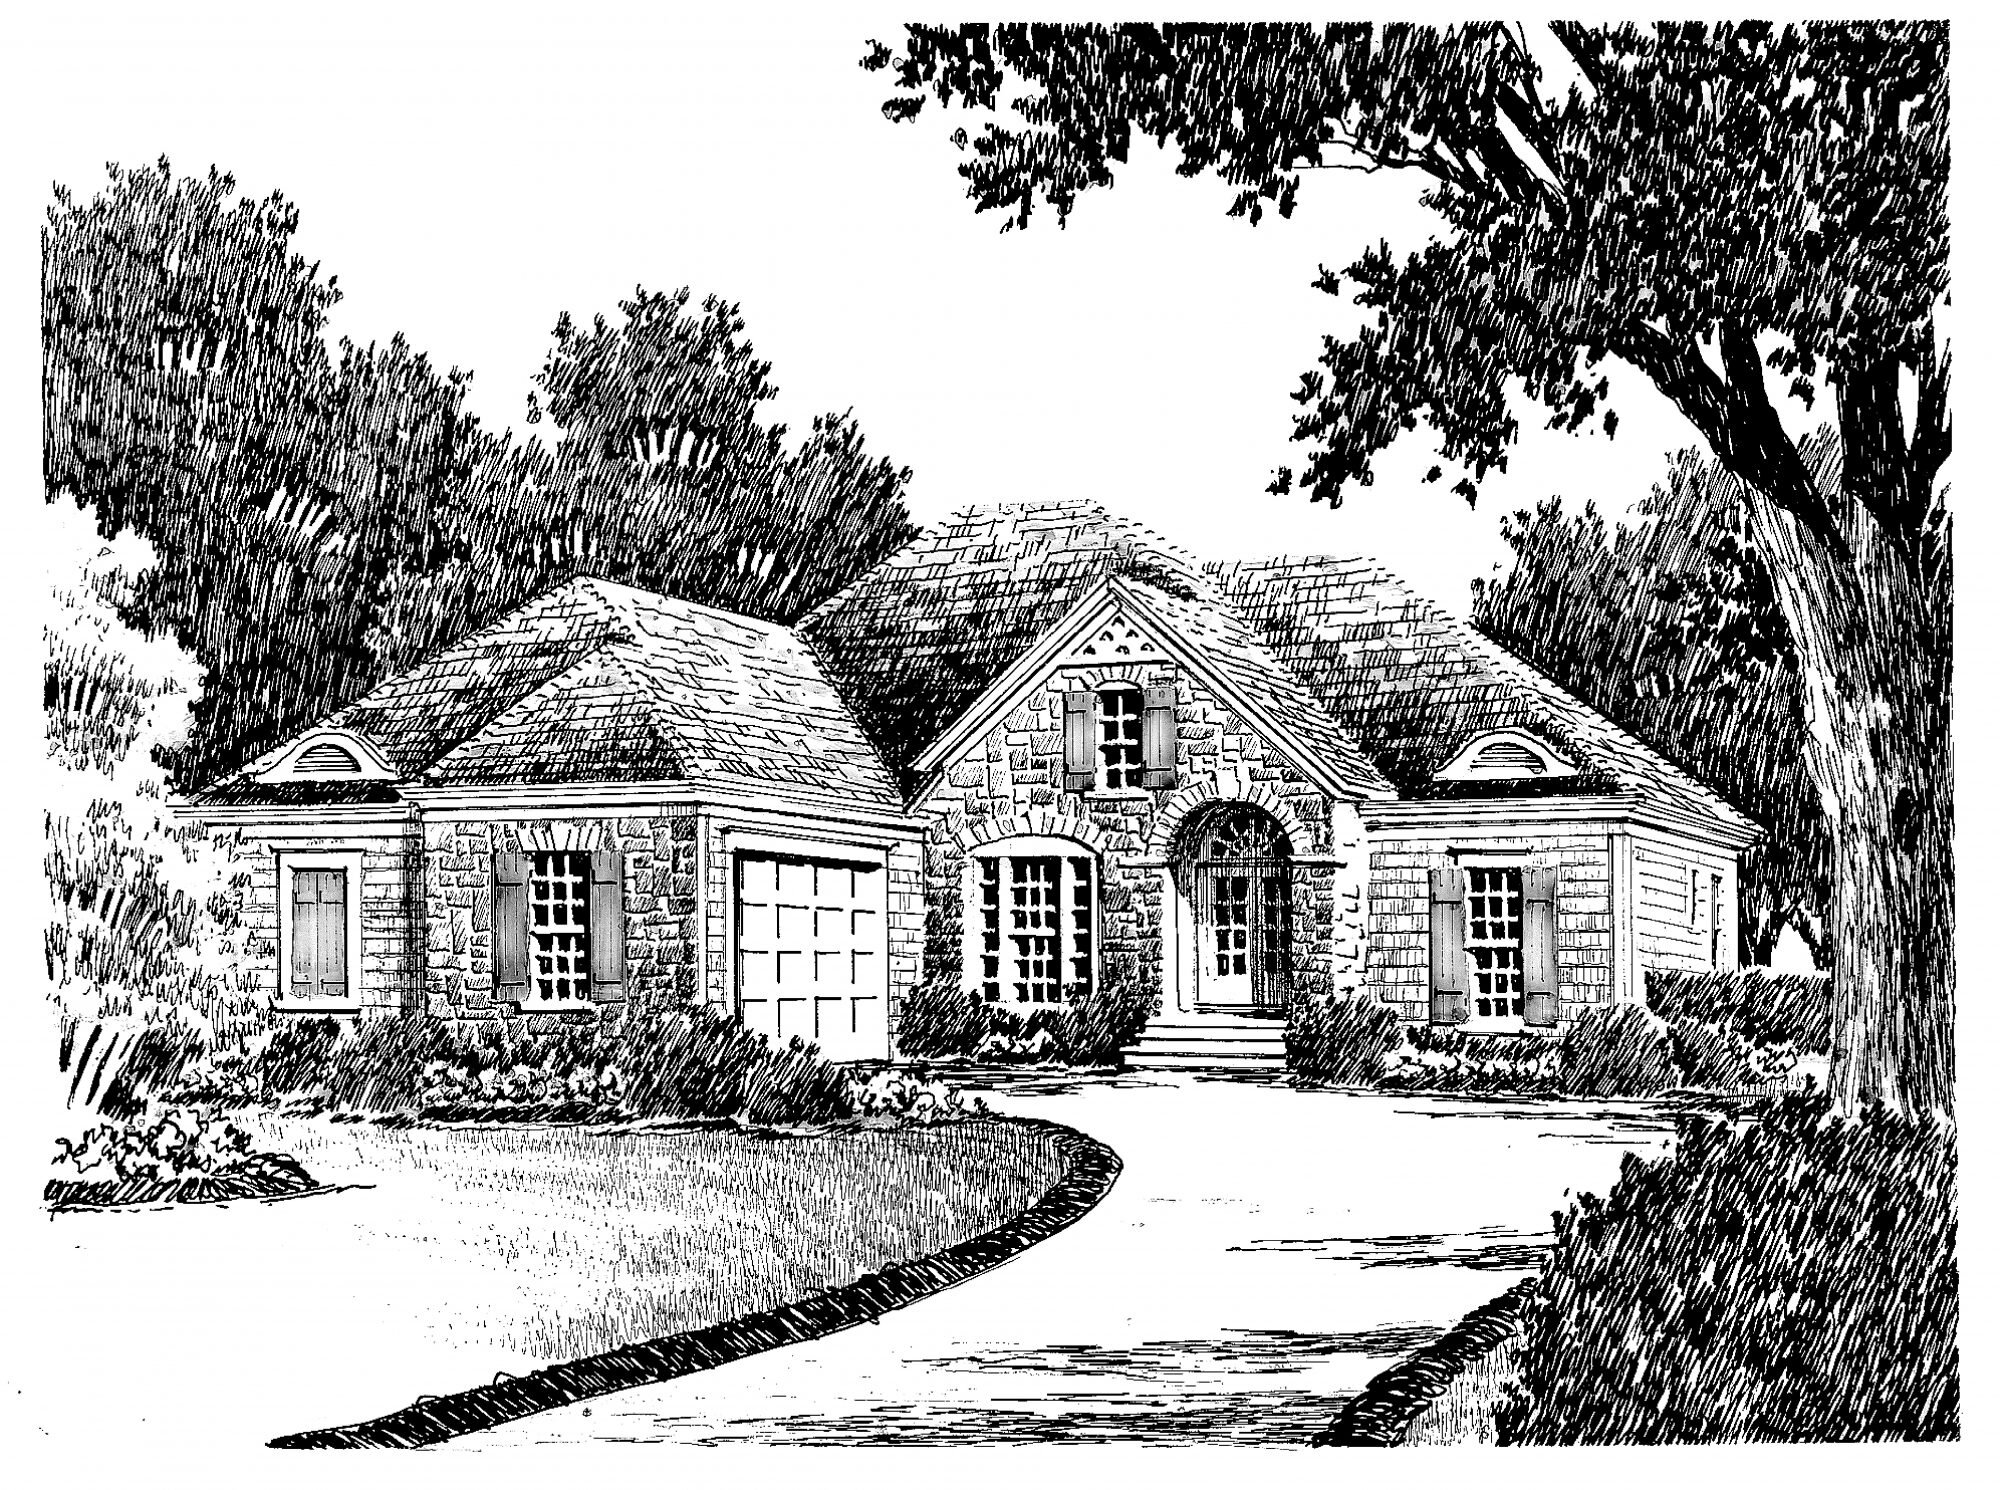 victorian narrow lot house plans, narrow lot european house plans, unique narrow lot house plans, narrow lot split level house plans, narrow depth house plans, narrow lot house plans waterfront, narrow lot house plans with detached garage, brick and stone european style house plans, long narrow lot house plans, narrow lot house plans with rear garage, narrow lot floor plans, small house plans, lake bungalow house plans, narrow lot house plans with courtyard, shingle style cottage home plans, narrow lot traditional house plans, narrow lot old house plans, single story narrow lot house plans, narrow lot log house plans, narrow lot lake cottage plans, on narrow lot house plans english cottage